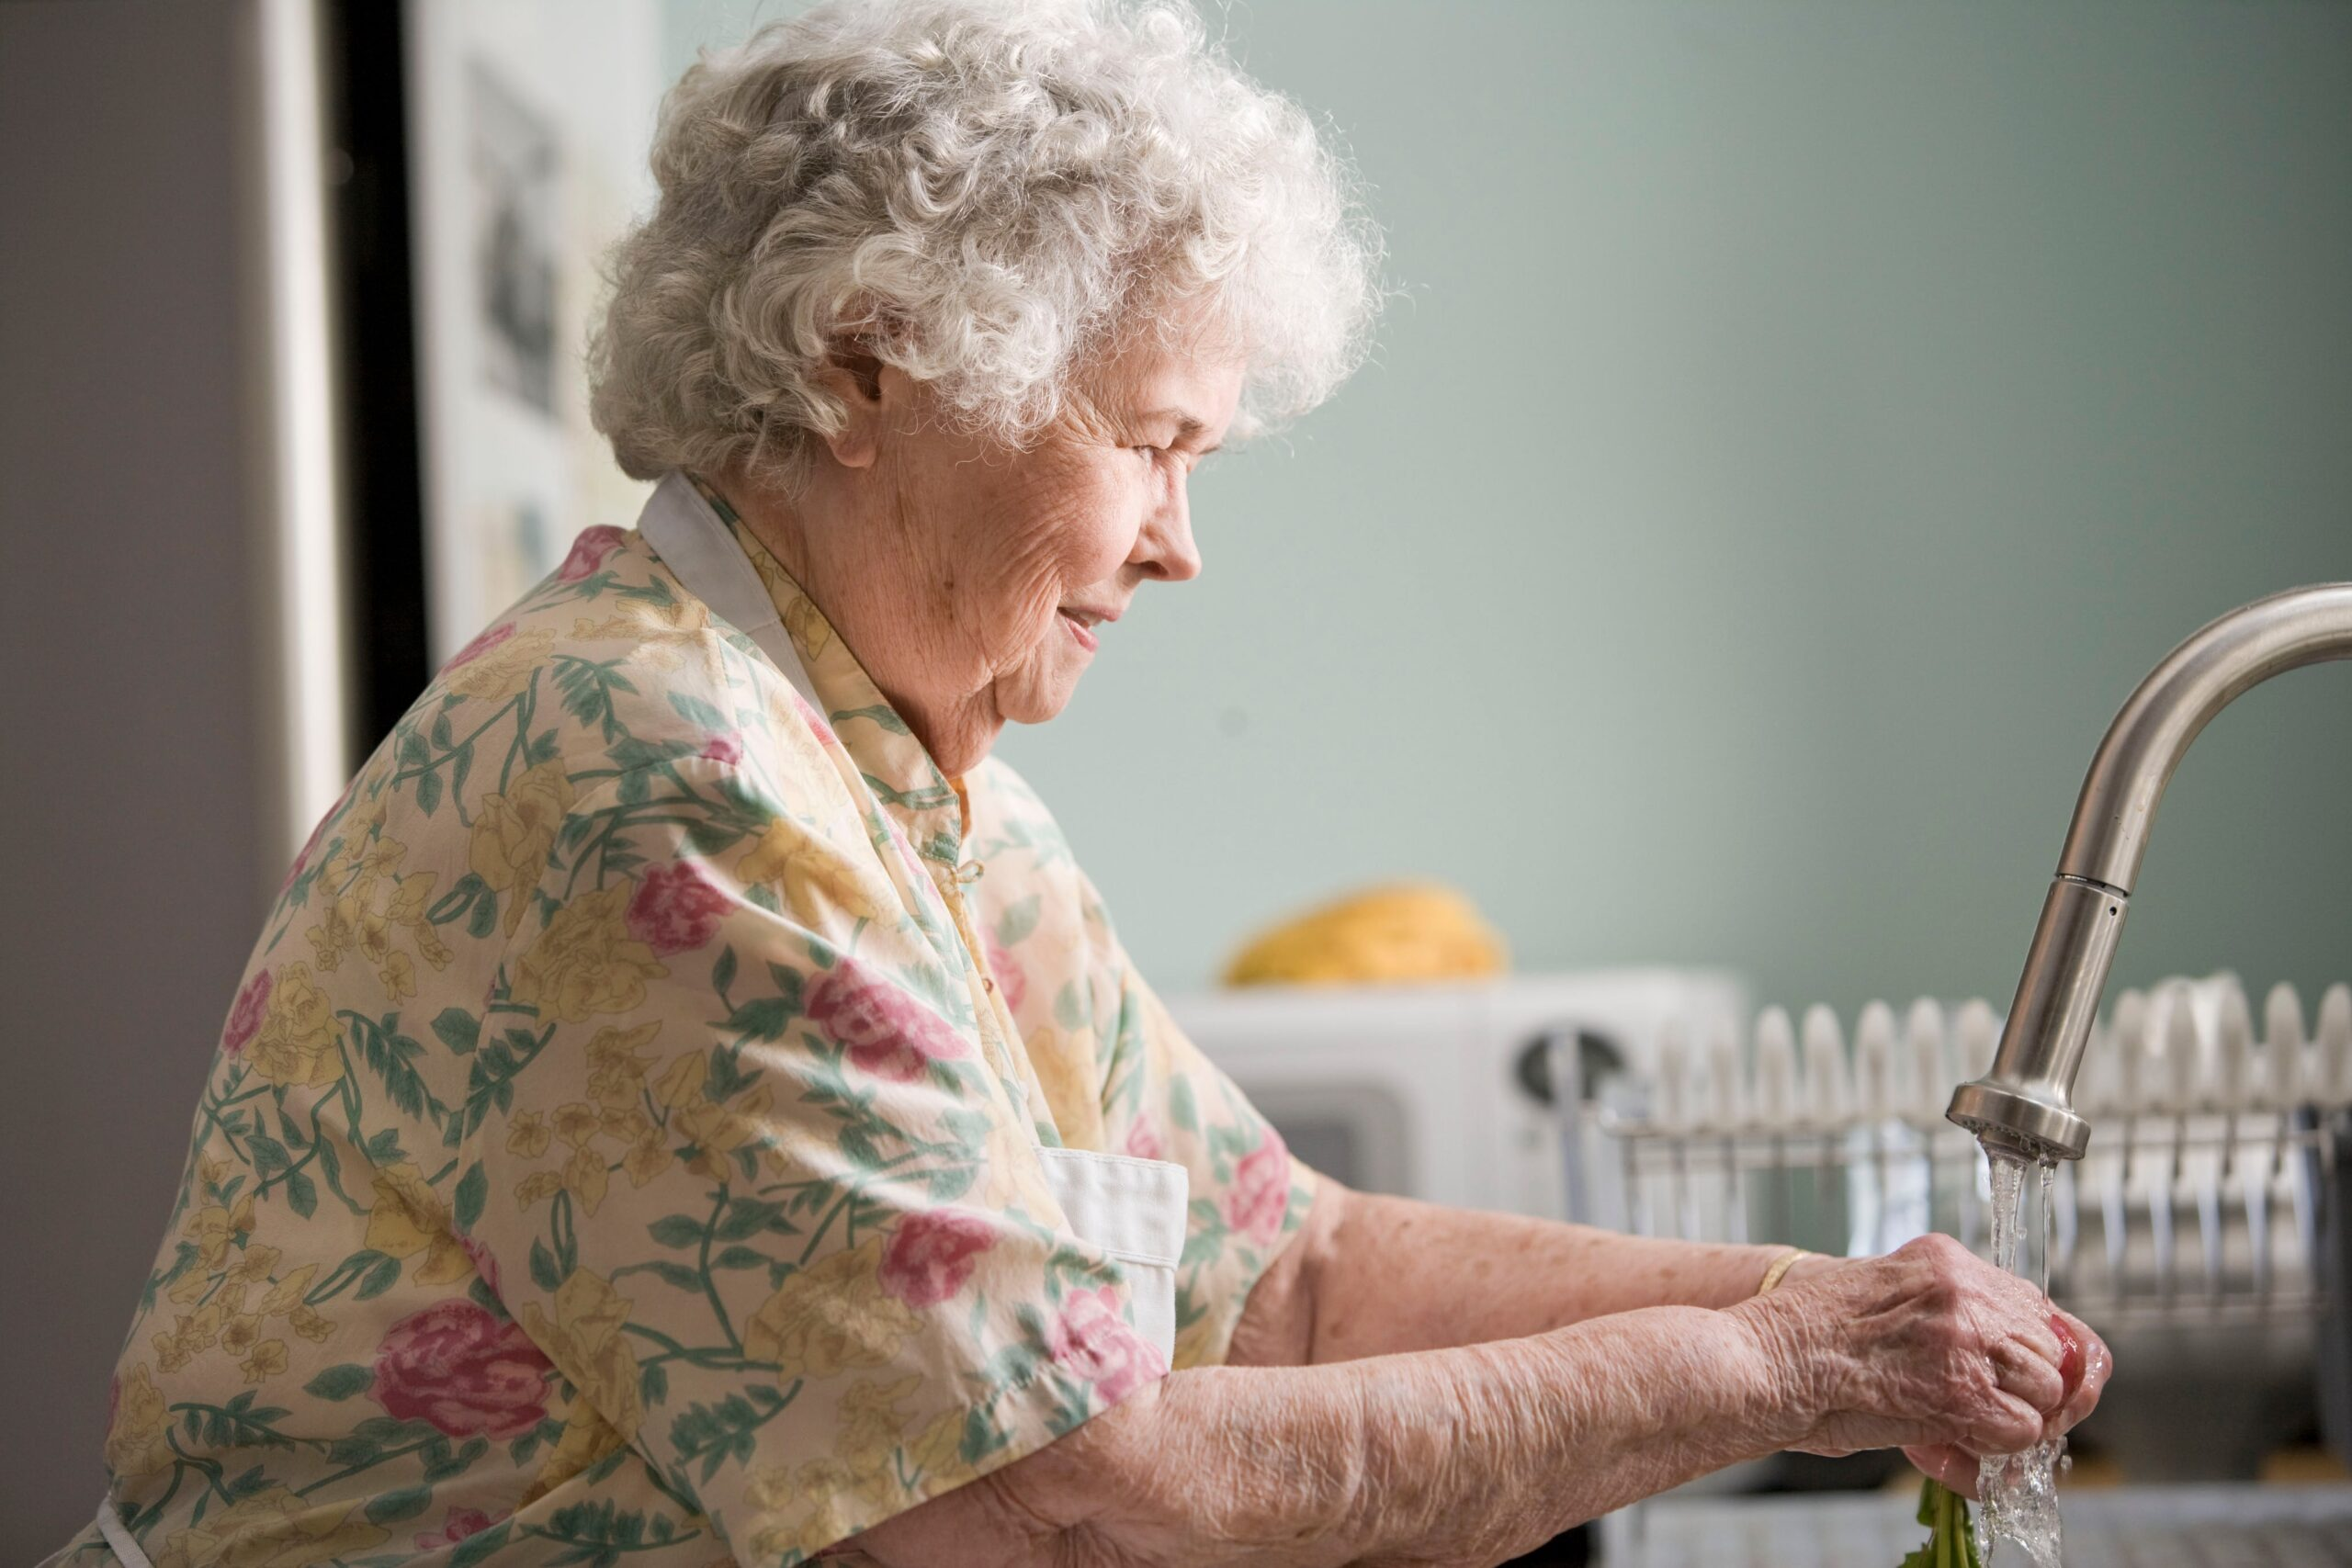 7 Ways to Take Care of Someone with Dementia